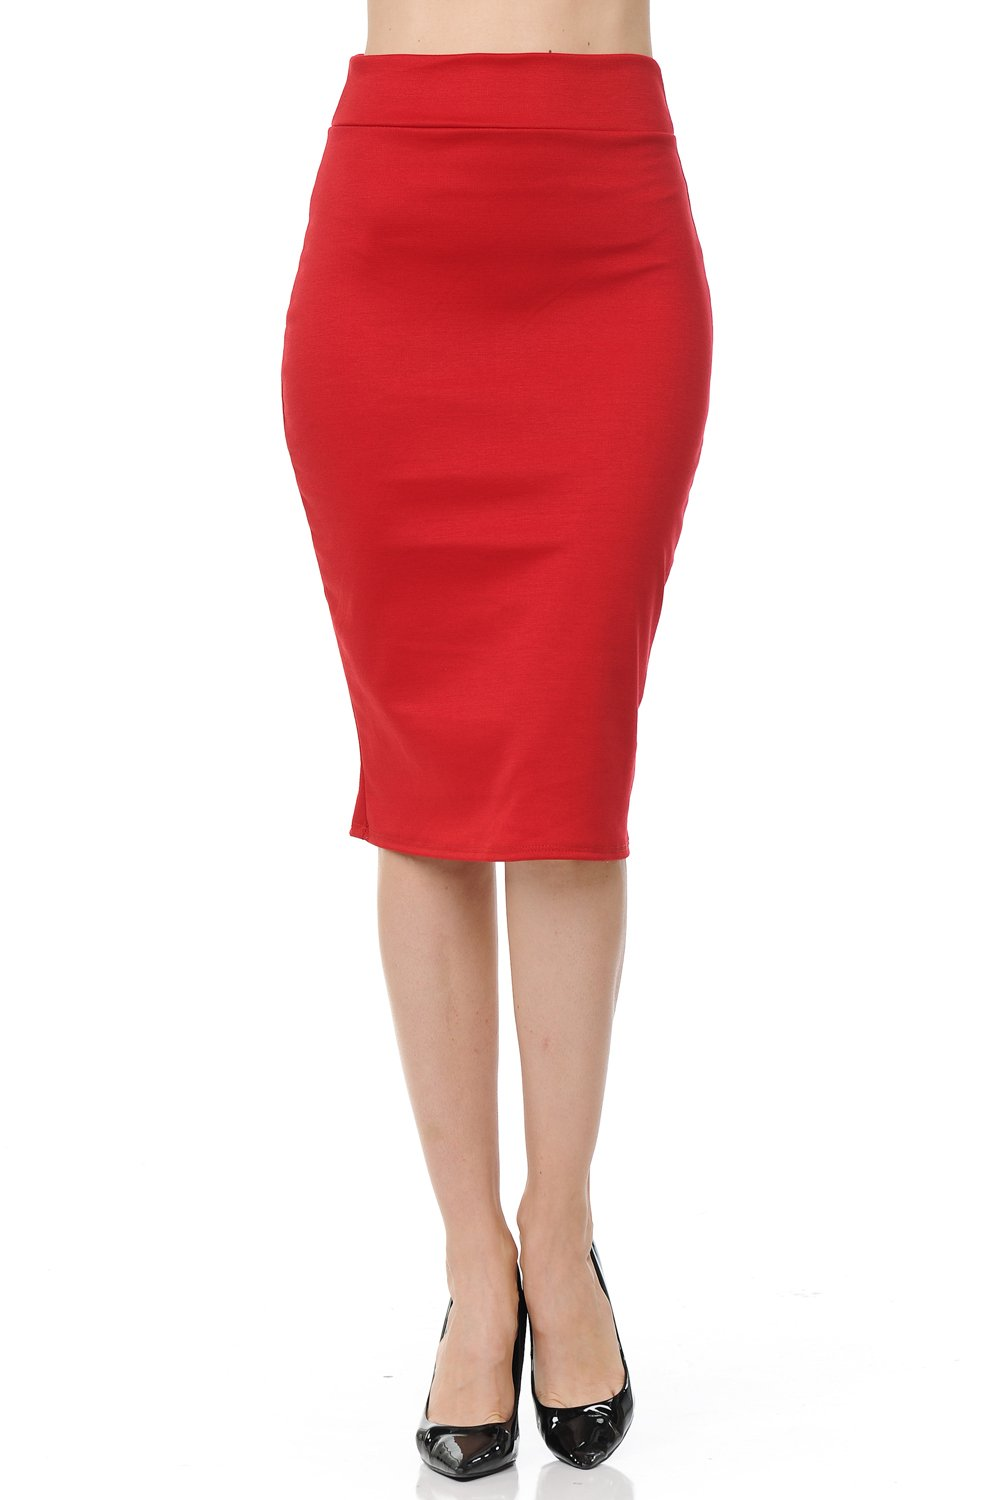 64fa385af4 SSOULM Women's Below Knee Stretchy Midi Pencil Skirt for Office Wear RED M